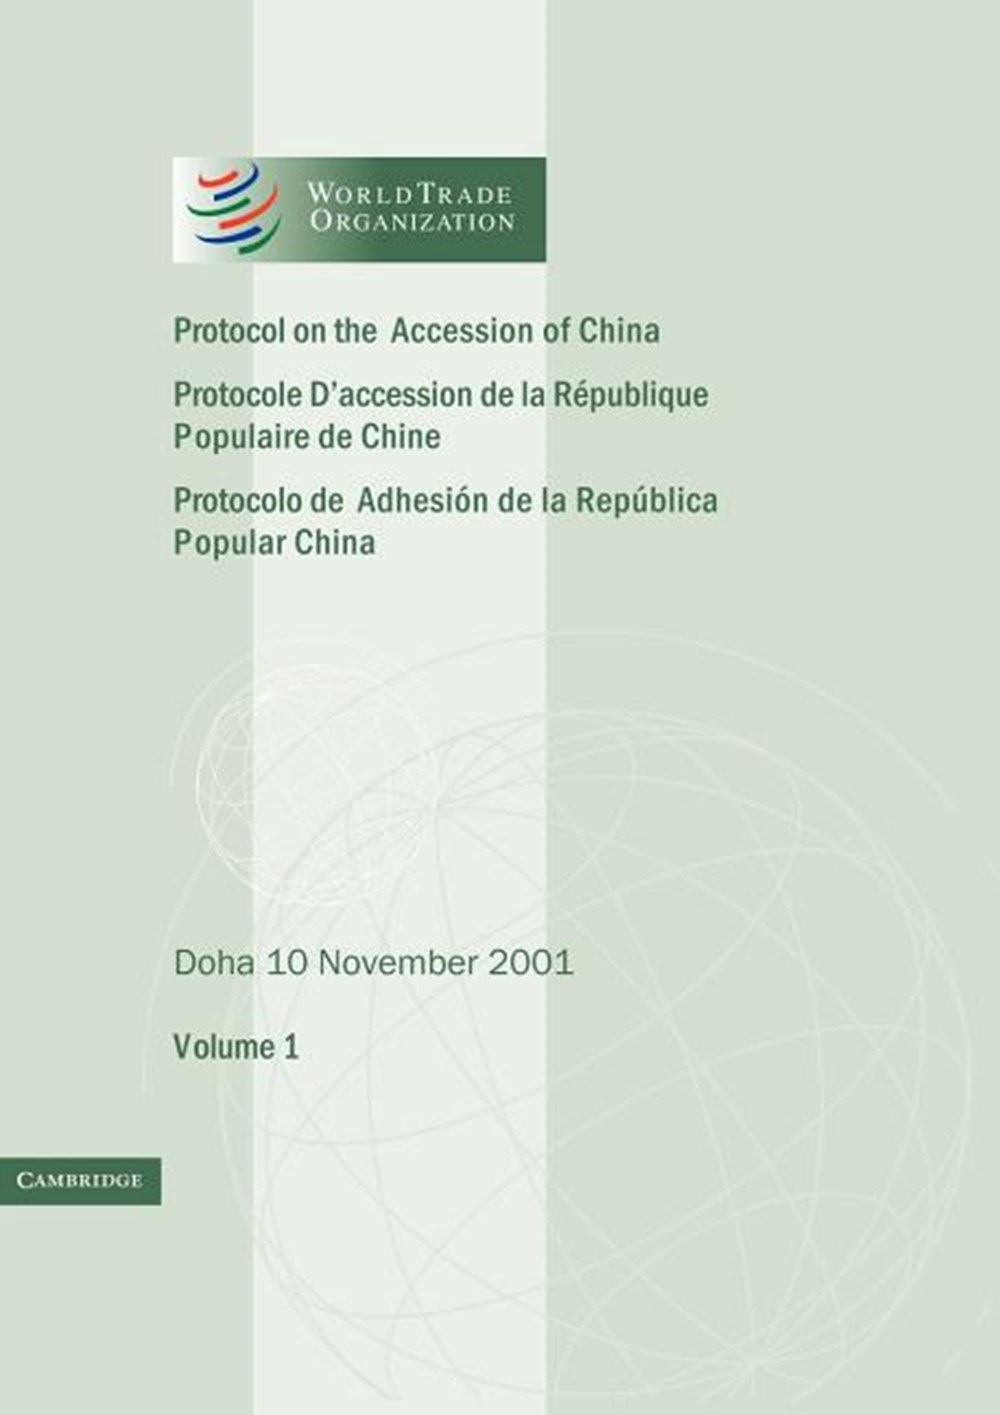 Protocol on the Accession of the People's Republic of China to the Marrakesh Agreement Establishing